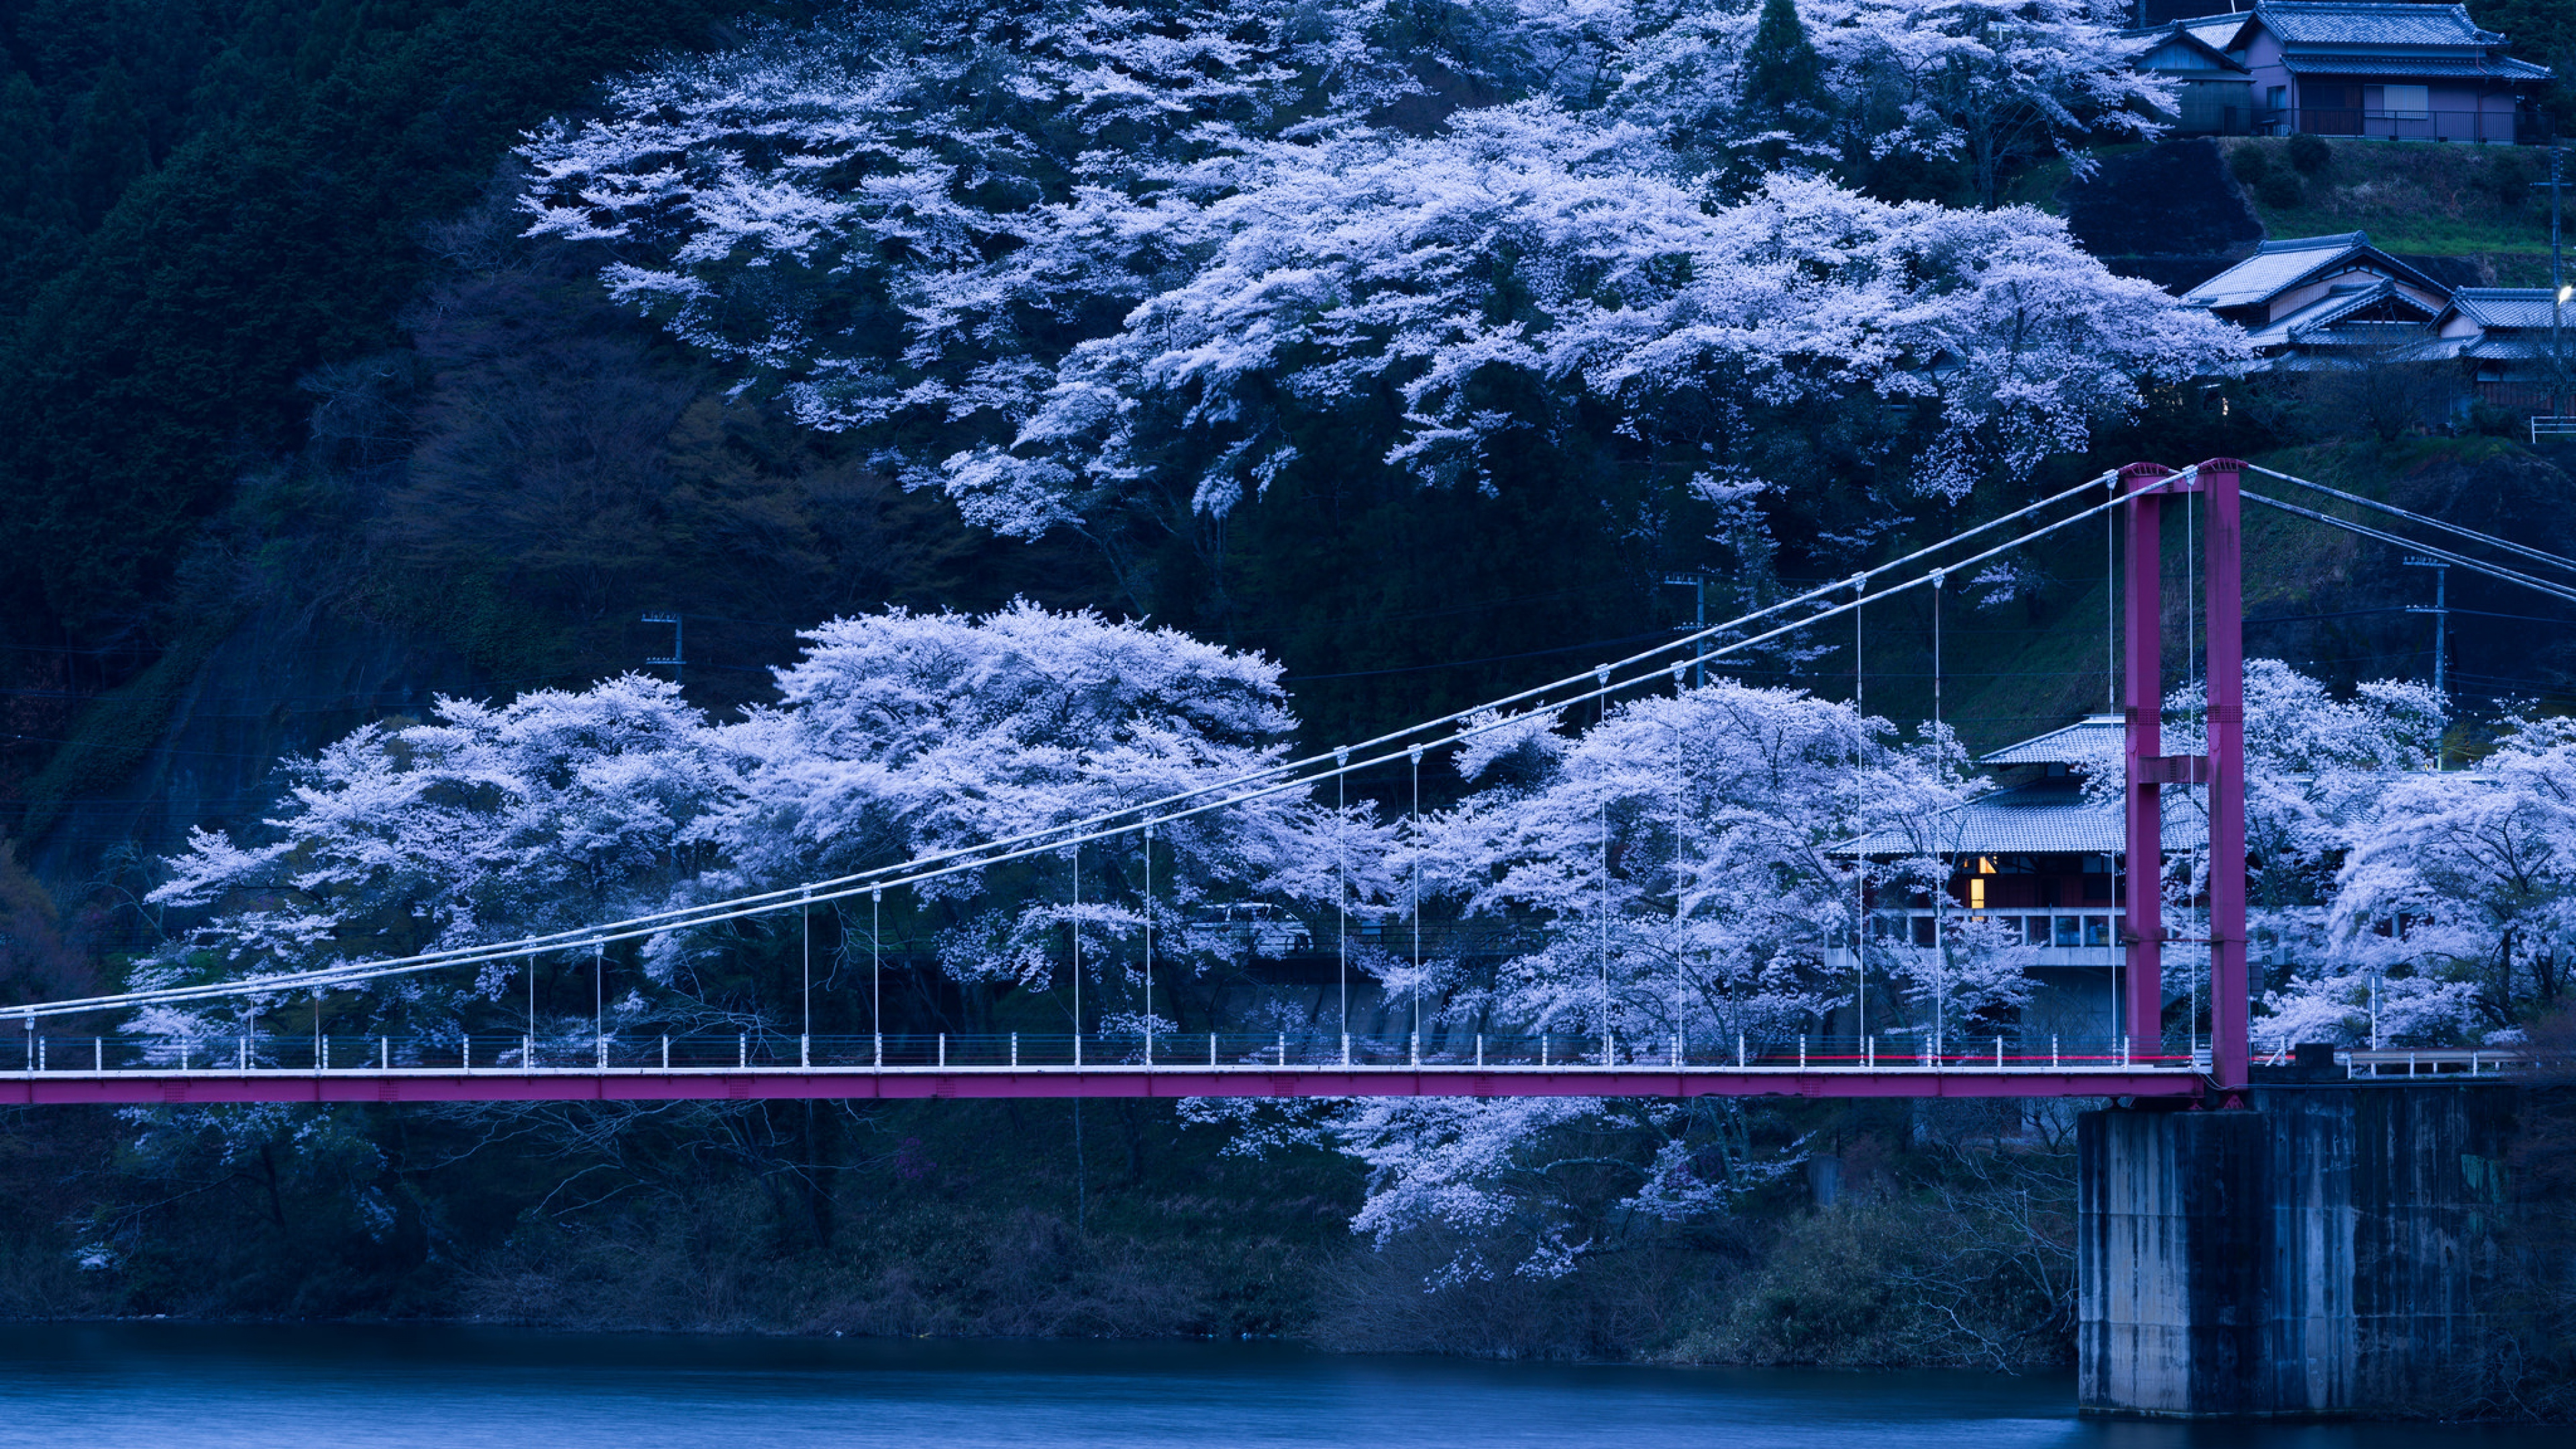 japan sakura trees wallpaper 51327